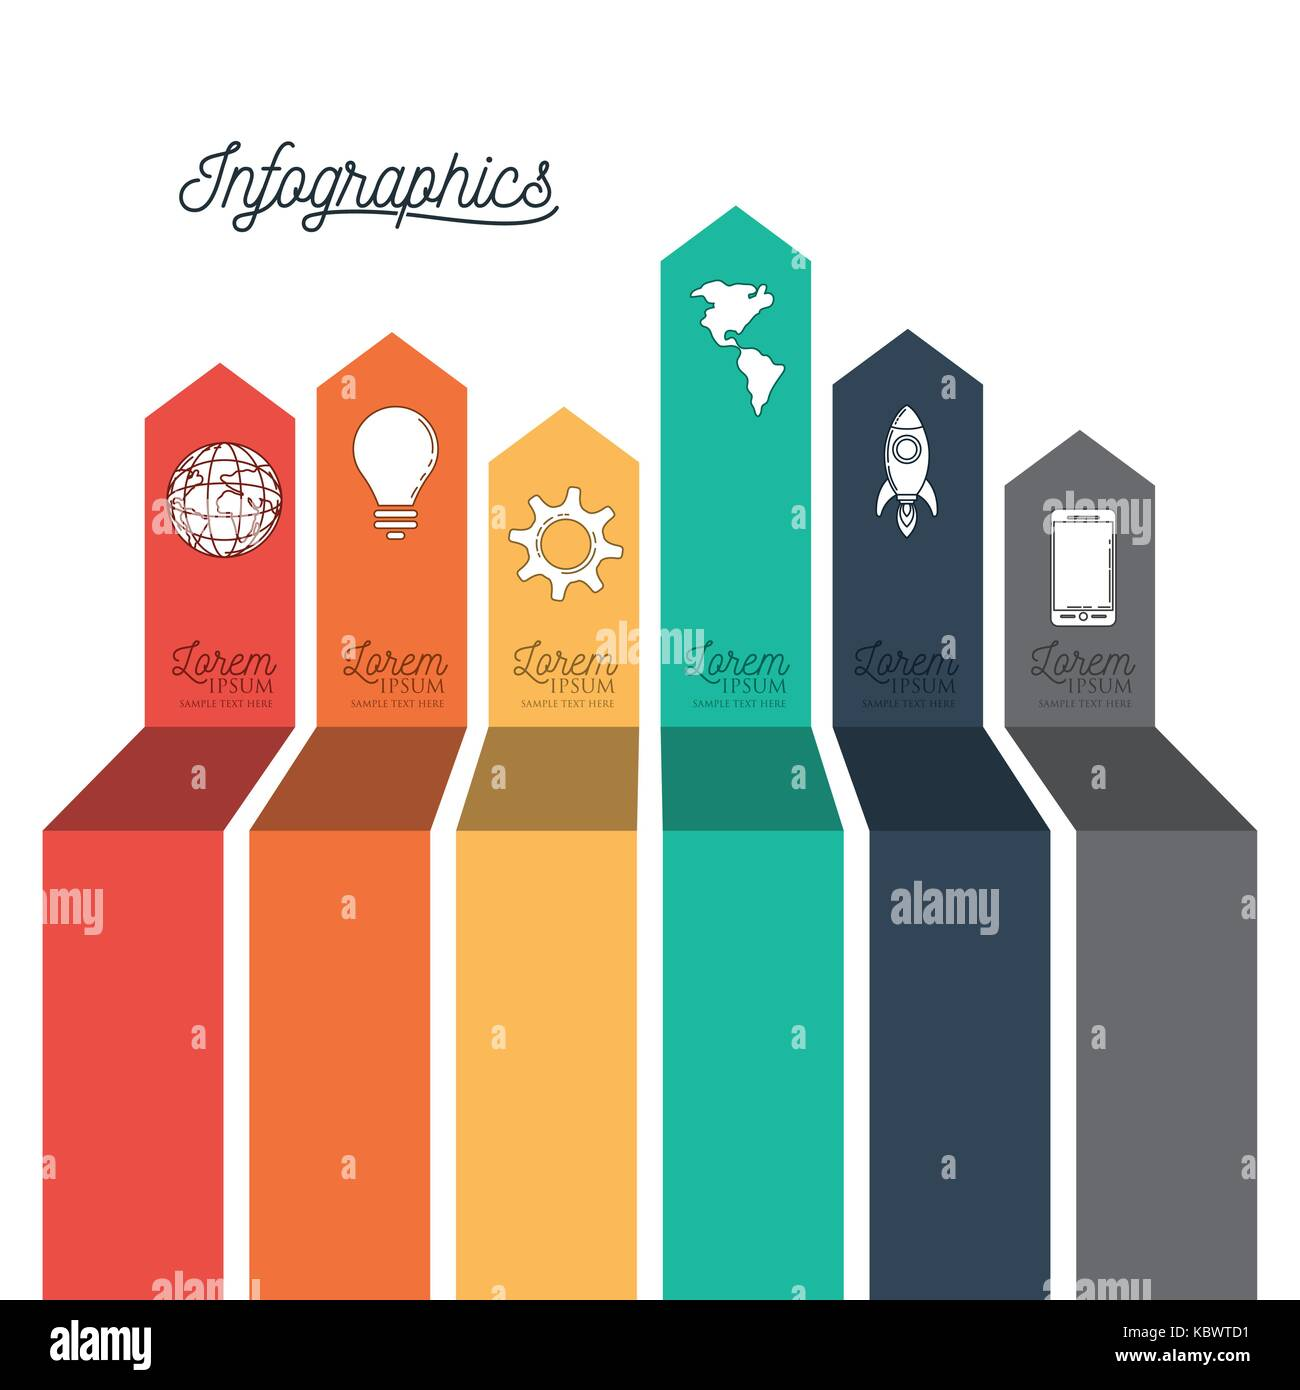 infographic with colorful labels icons with different sizes - Stock Image